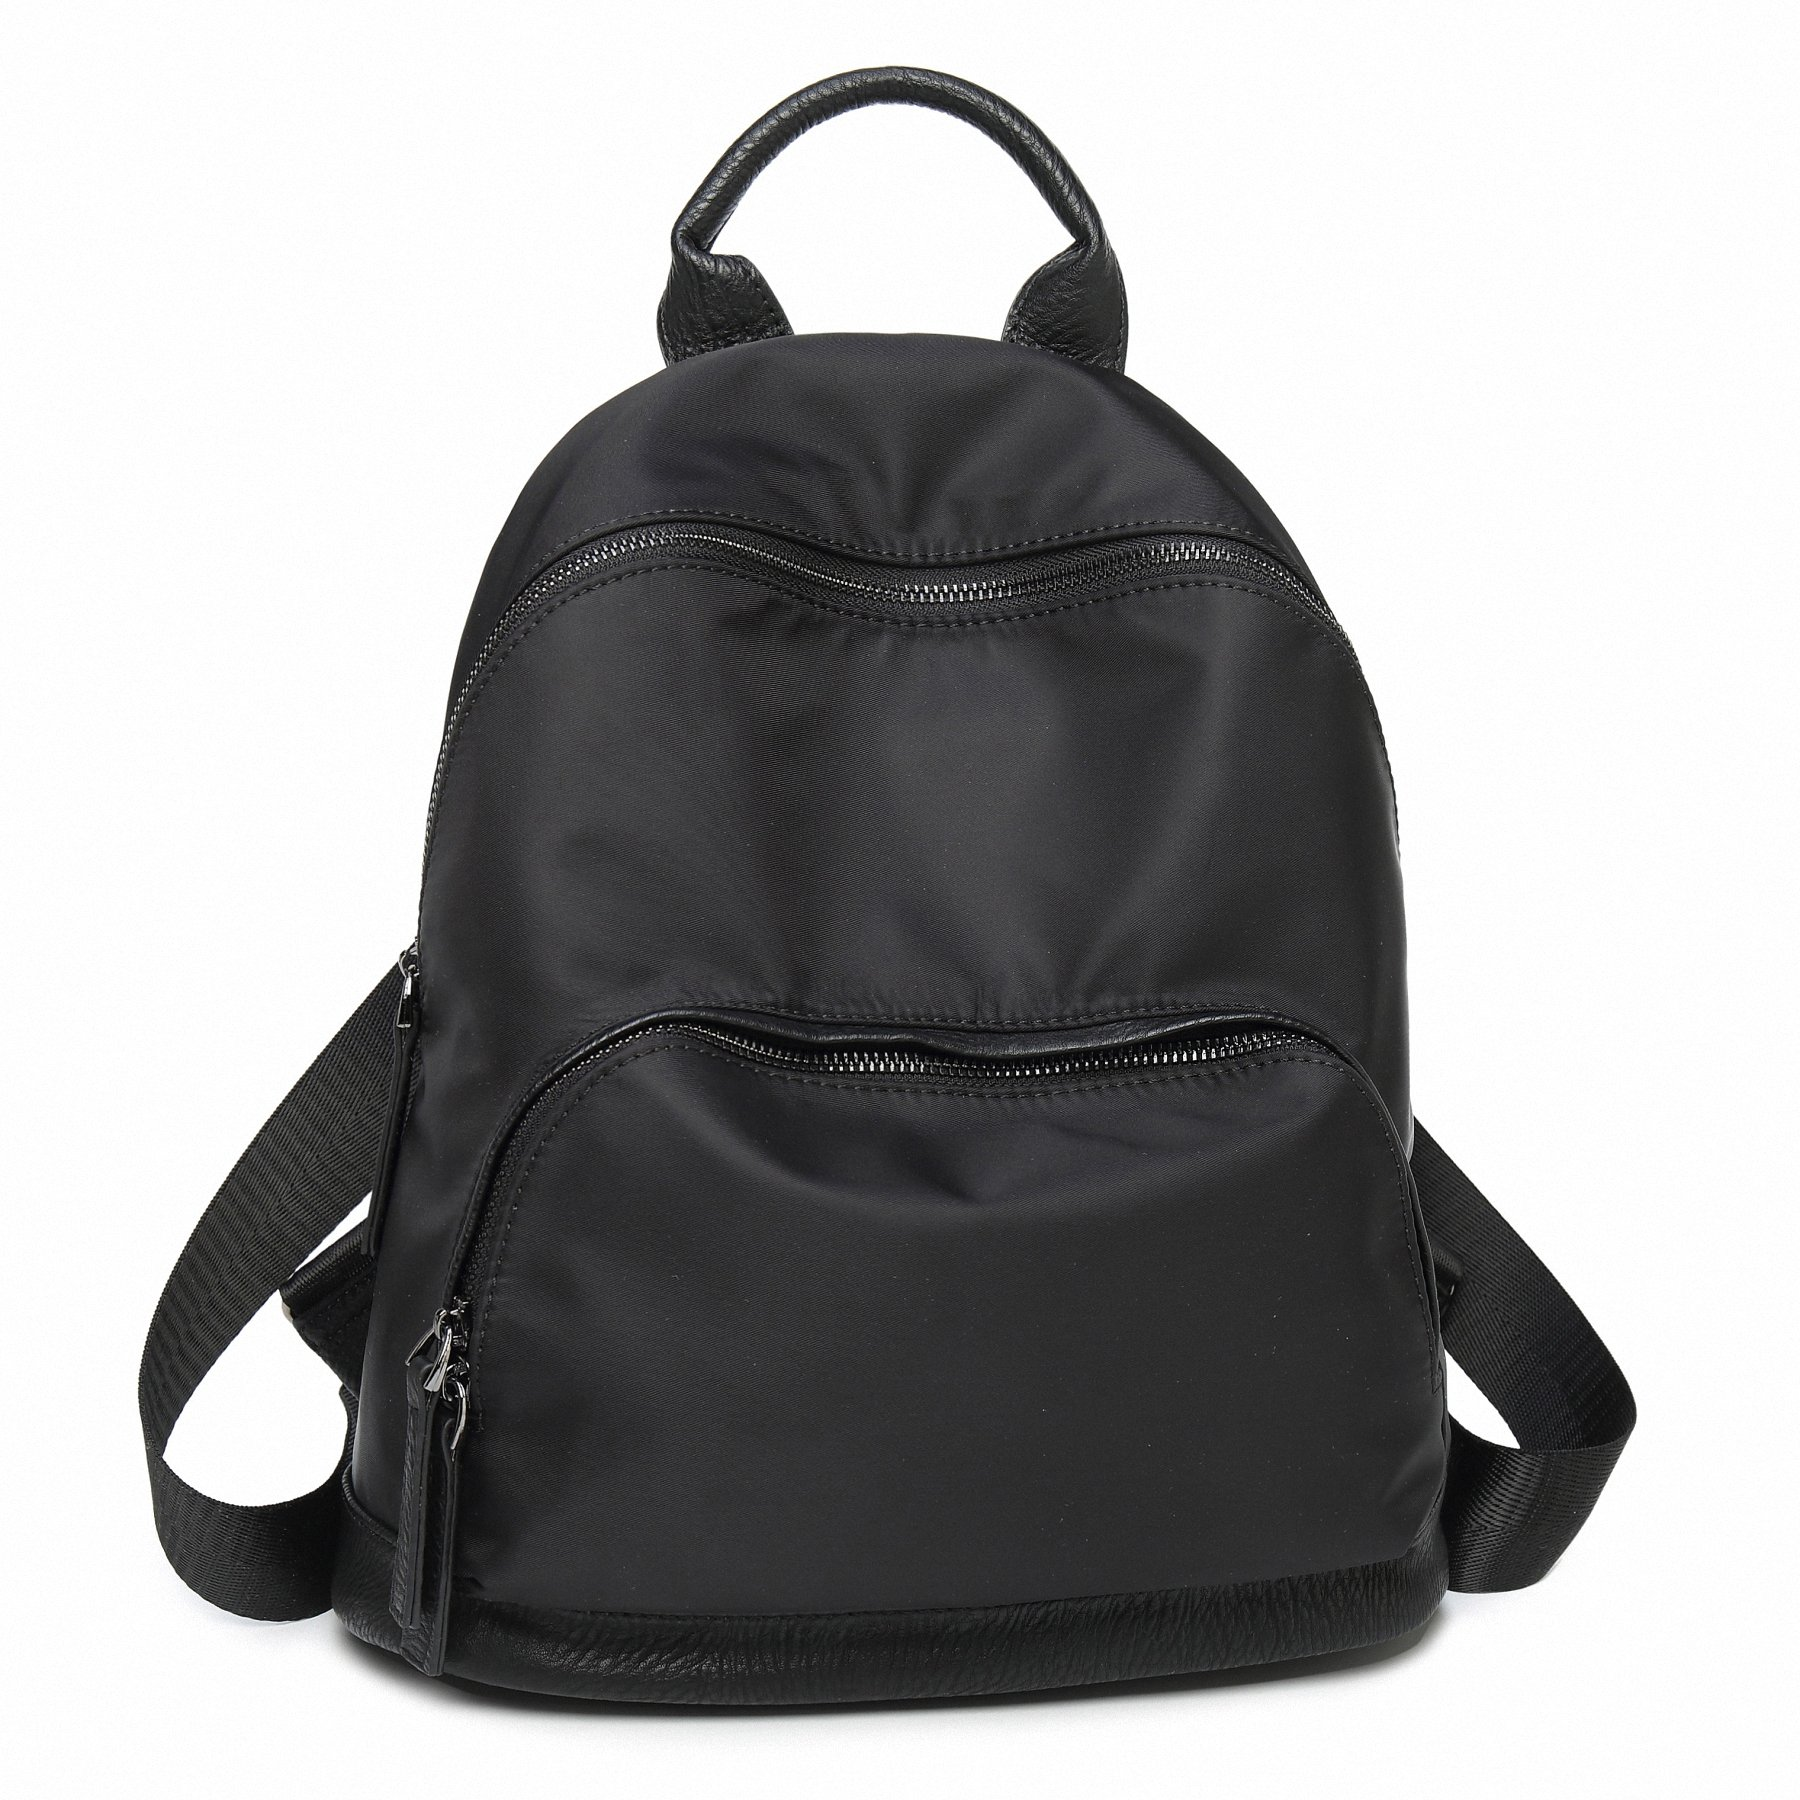 AOTIAN Women Backpacks Purse - Small Handy Bag Casual Daypack For Girls 13 Liters Black by AOTIAN (Image #2)